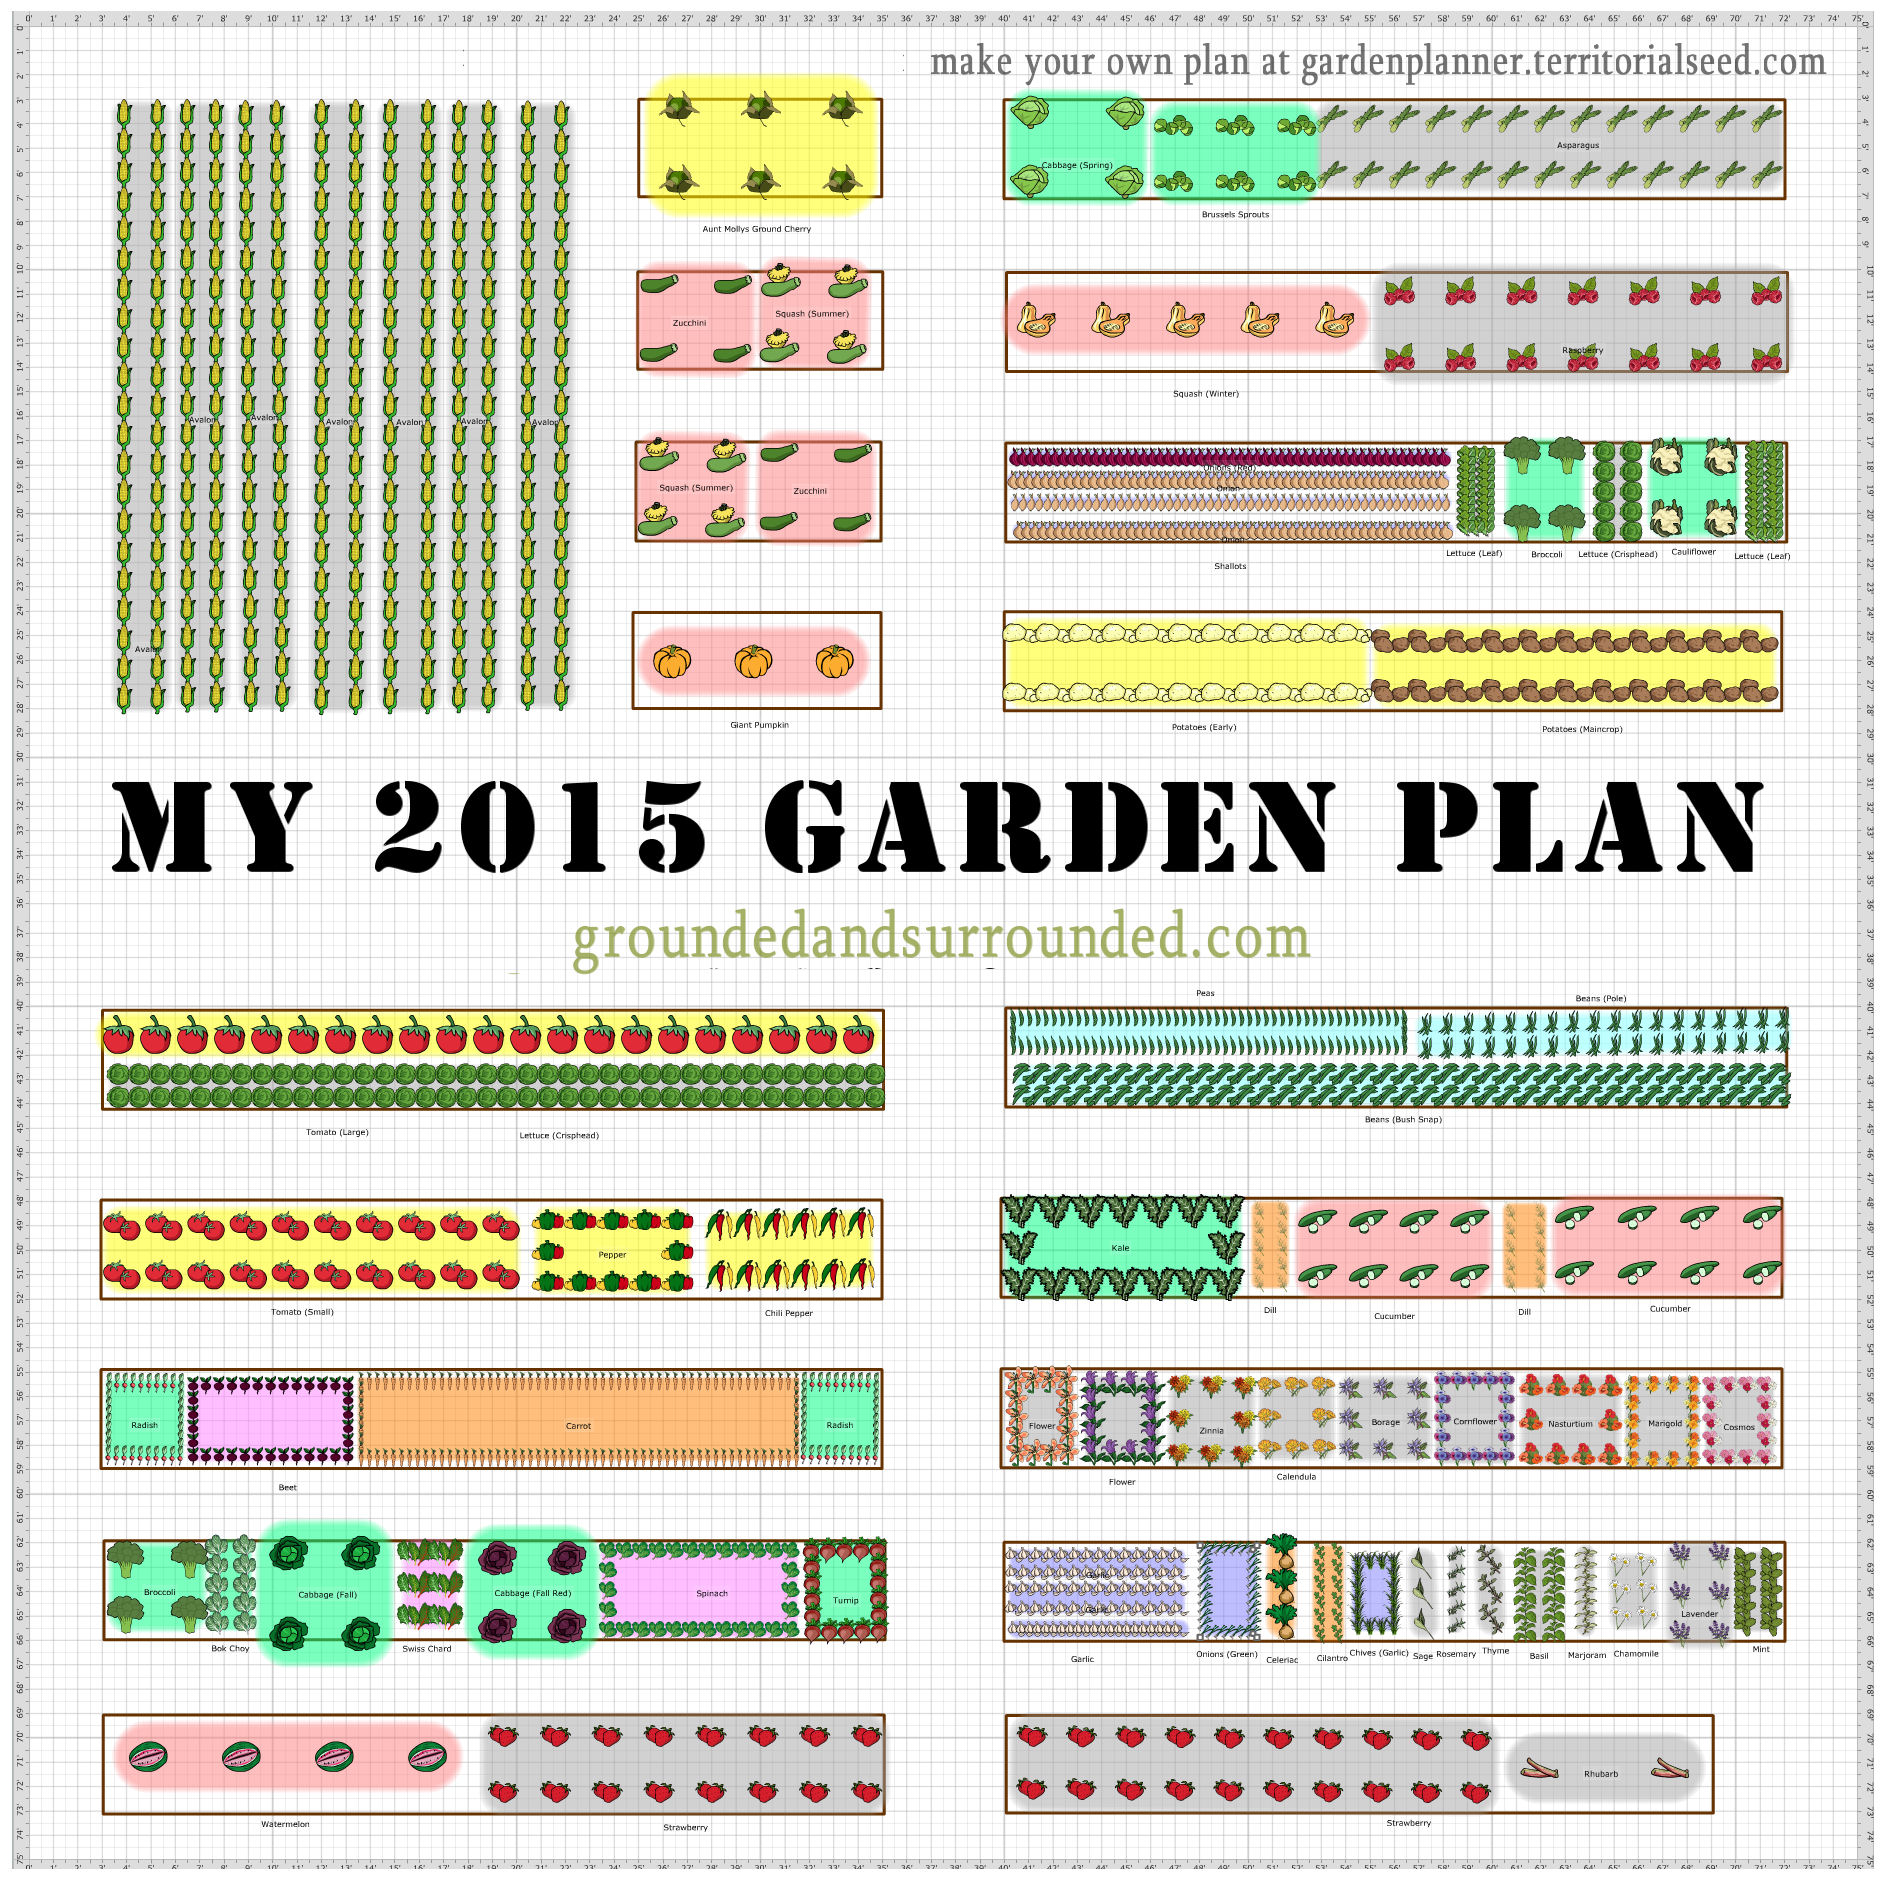 My 5 000 sq ft vegetable garden plan grounded surrounded for Garden maker online